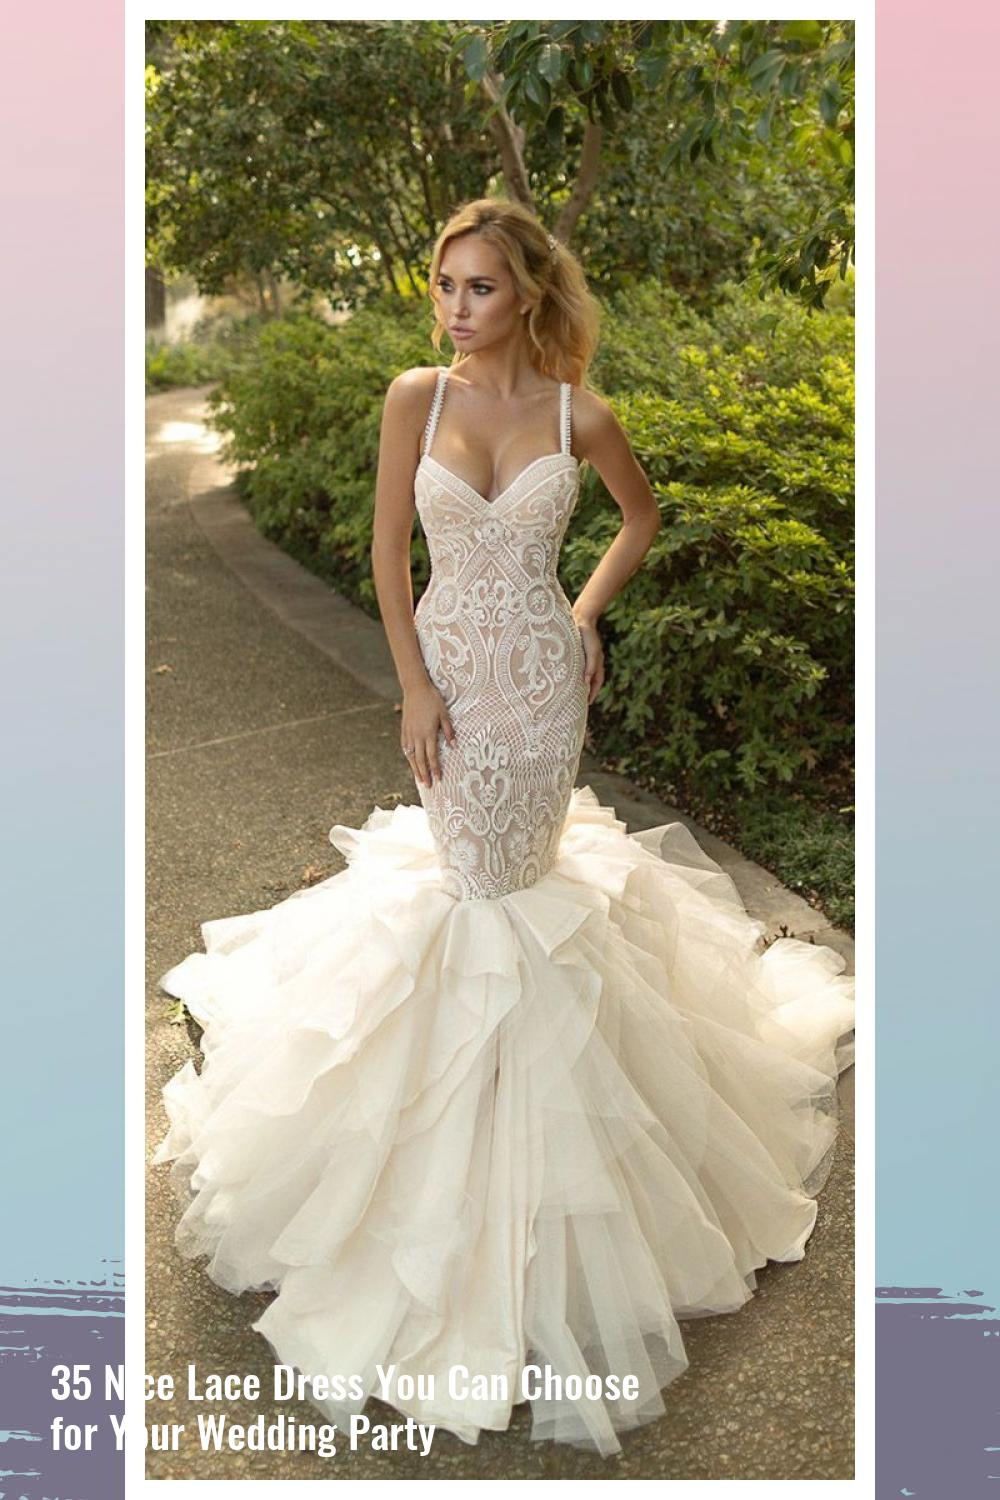 35 Nice Lace Dress You Can Choose for Your Wedding Party 17